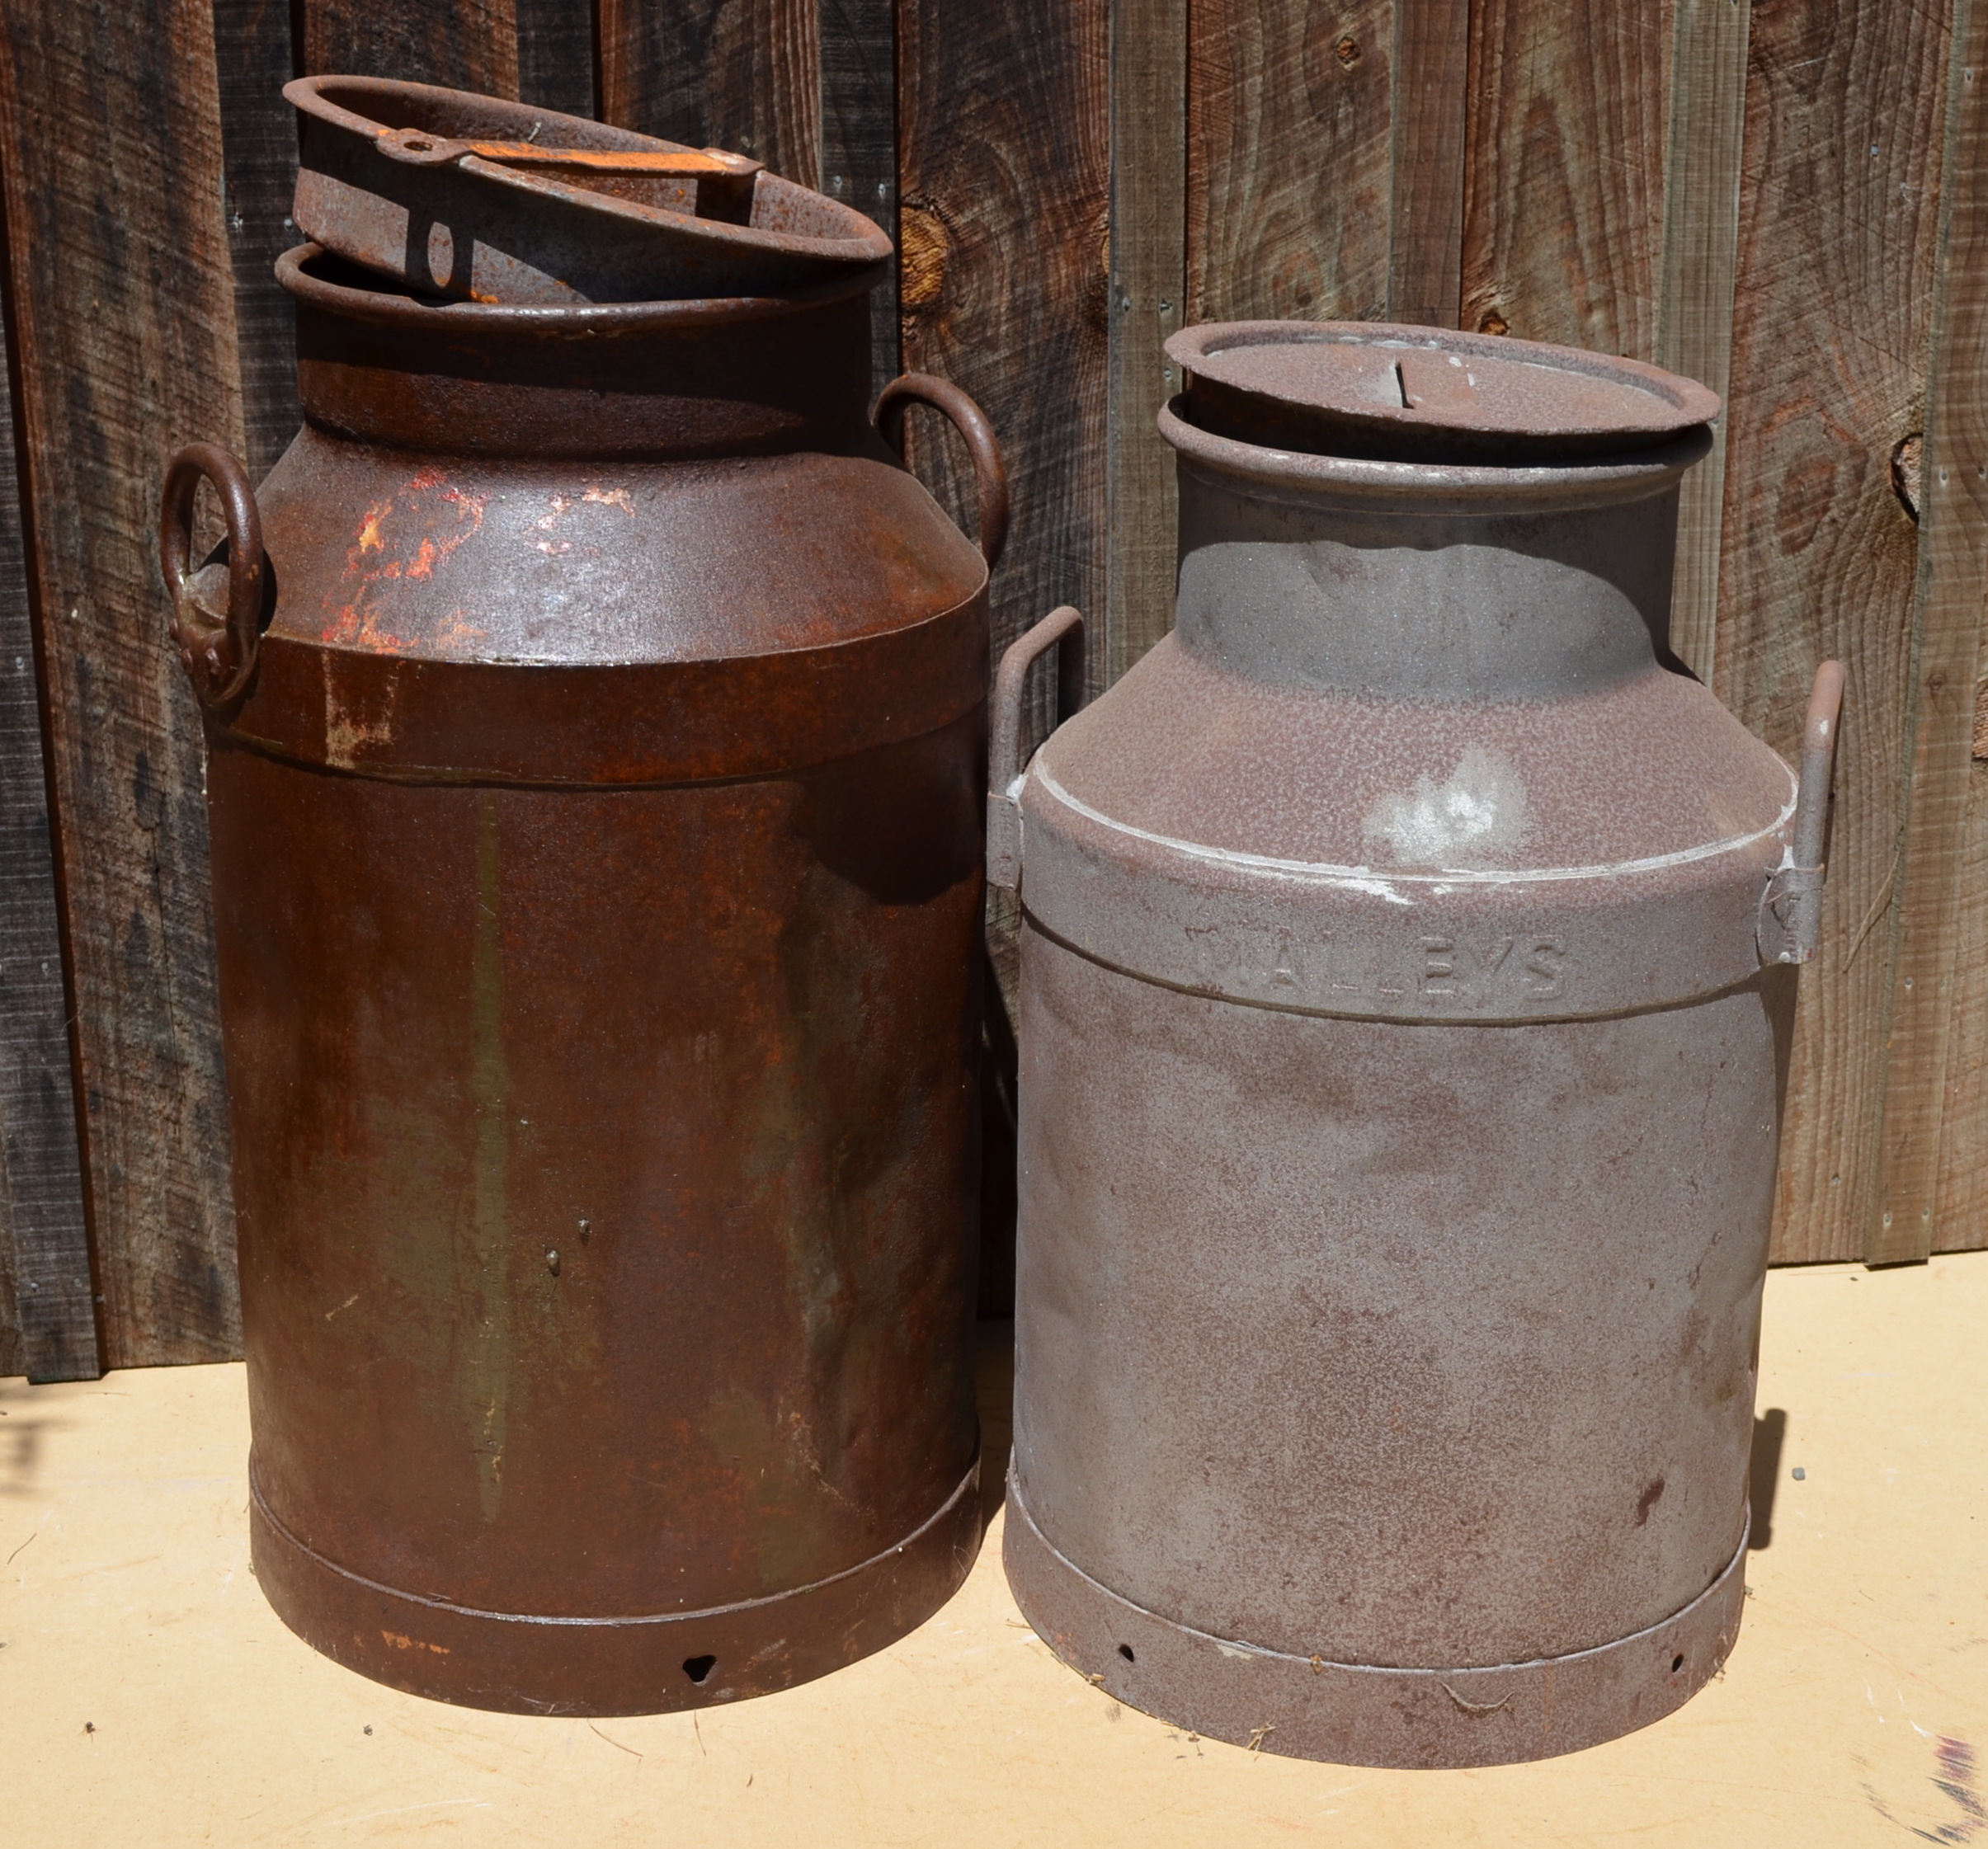 The milk can on the right is the first one in Spellerberg's collection. The one on the left was purchased at farm auction in New Zealand.